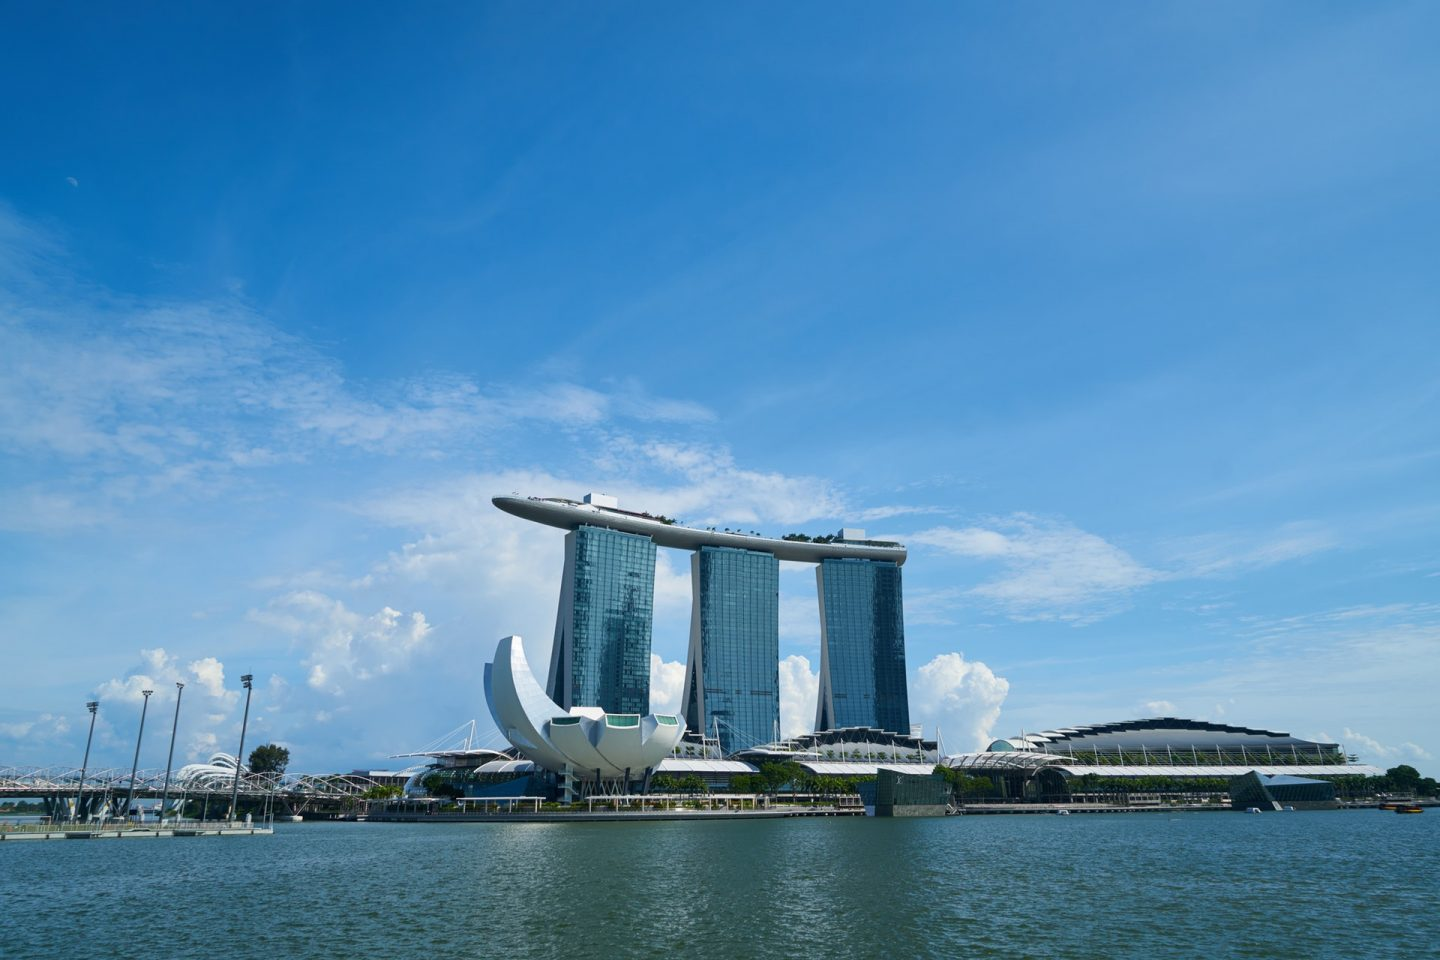 Heres-What-You-Need-to-Pack-when-on-a-Trip-to-Singapore-marina-bay